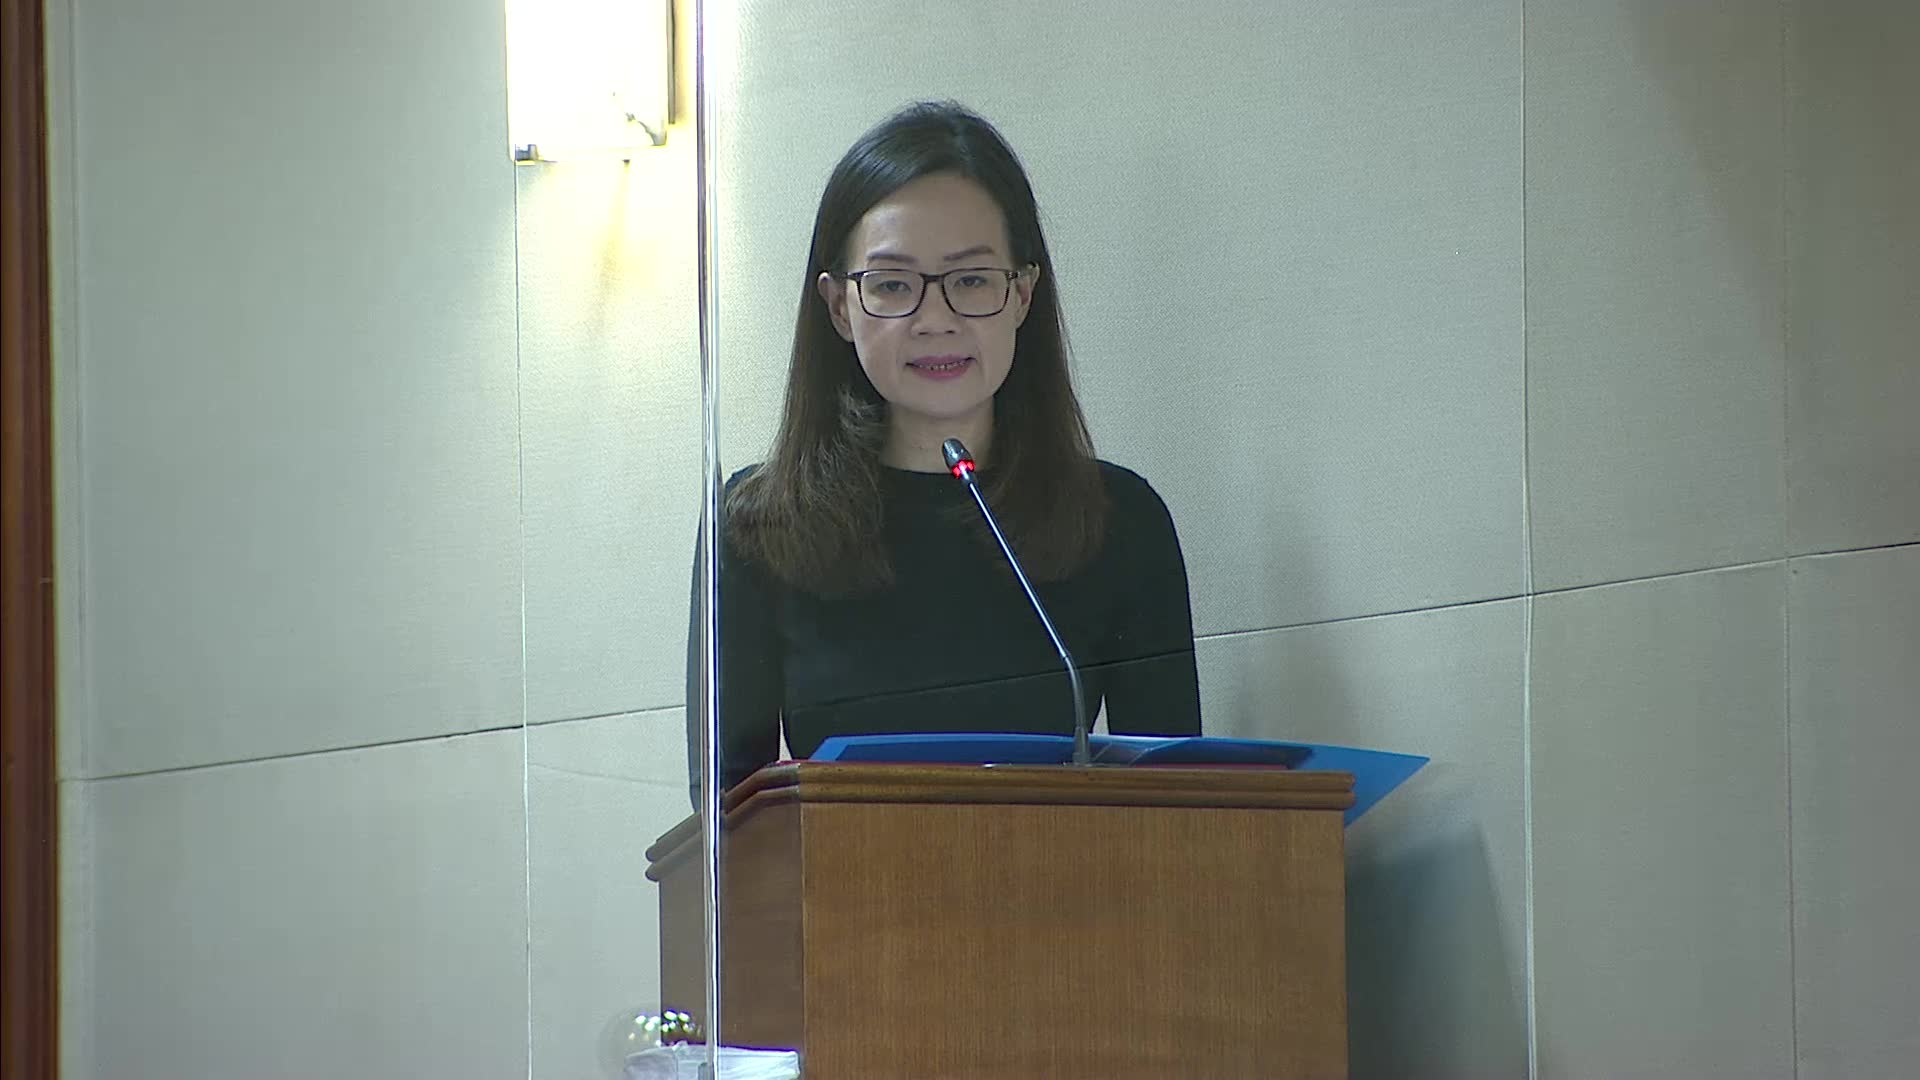 Debate on President's Address: Rachel Ong on being a 'nation by design'